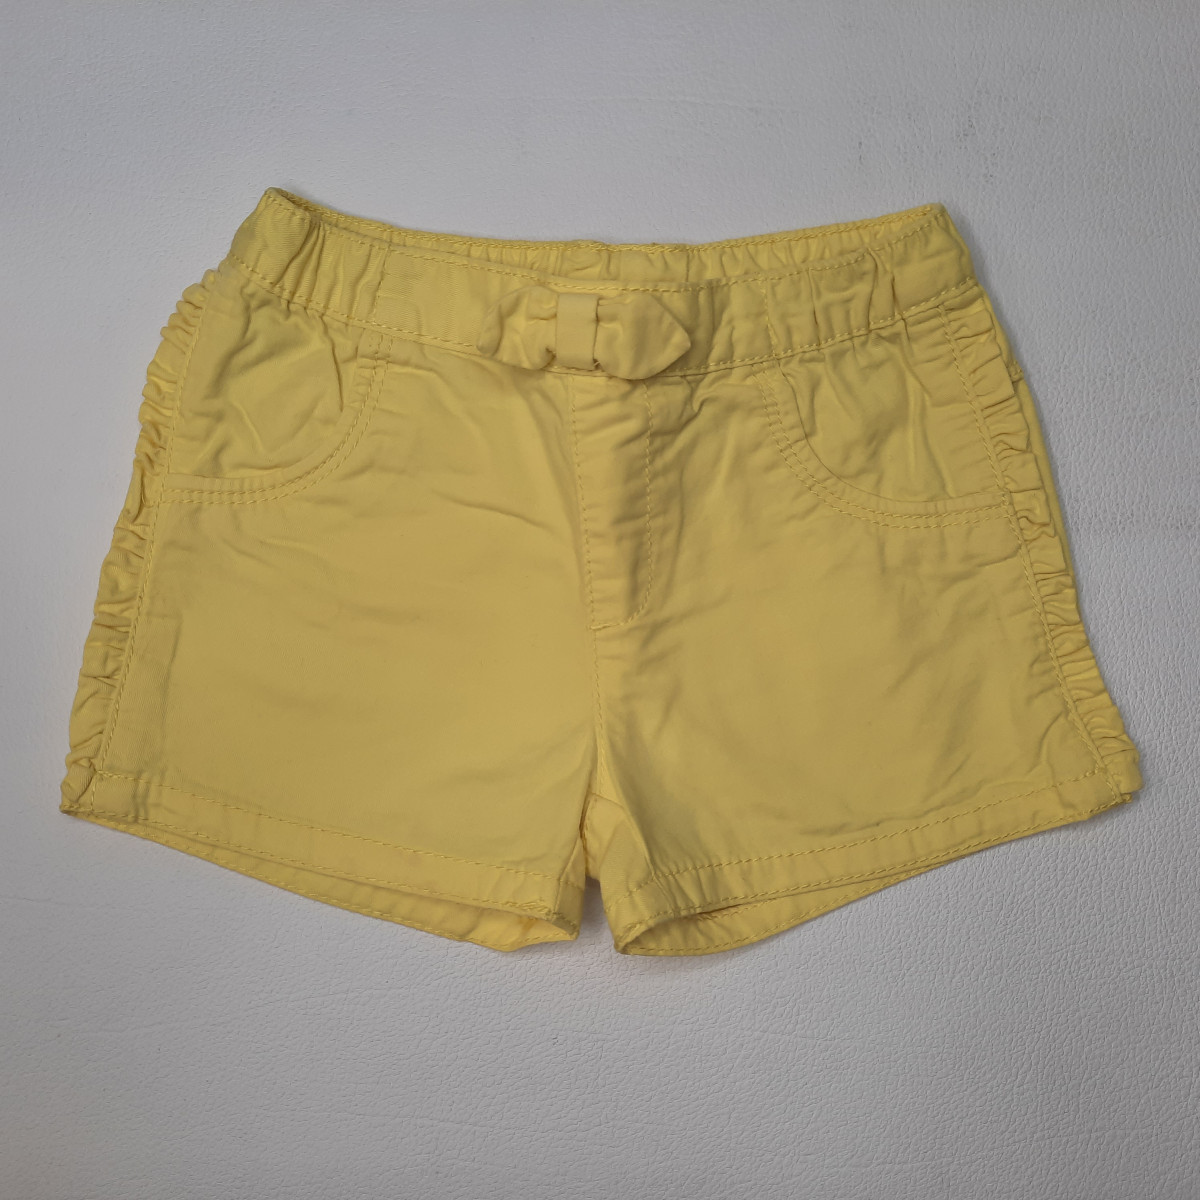 Shorts, Bermudas - photo 10